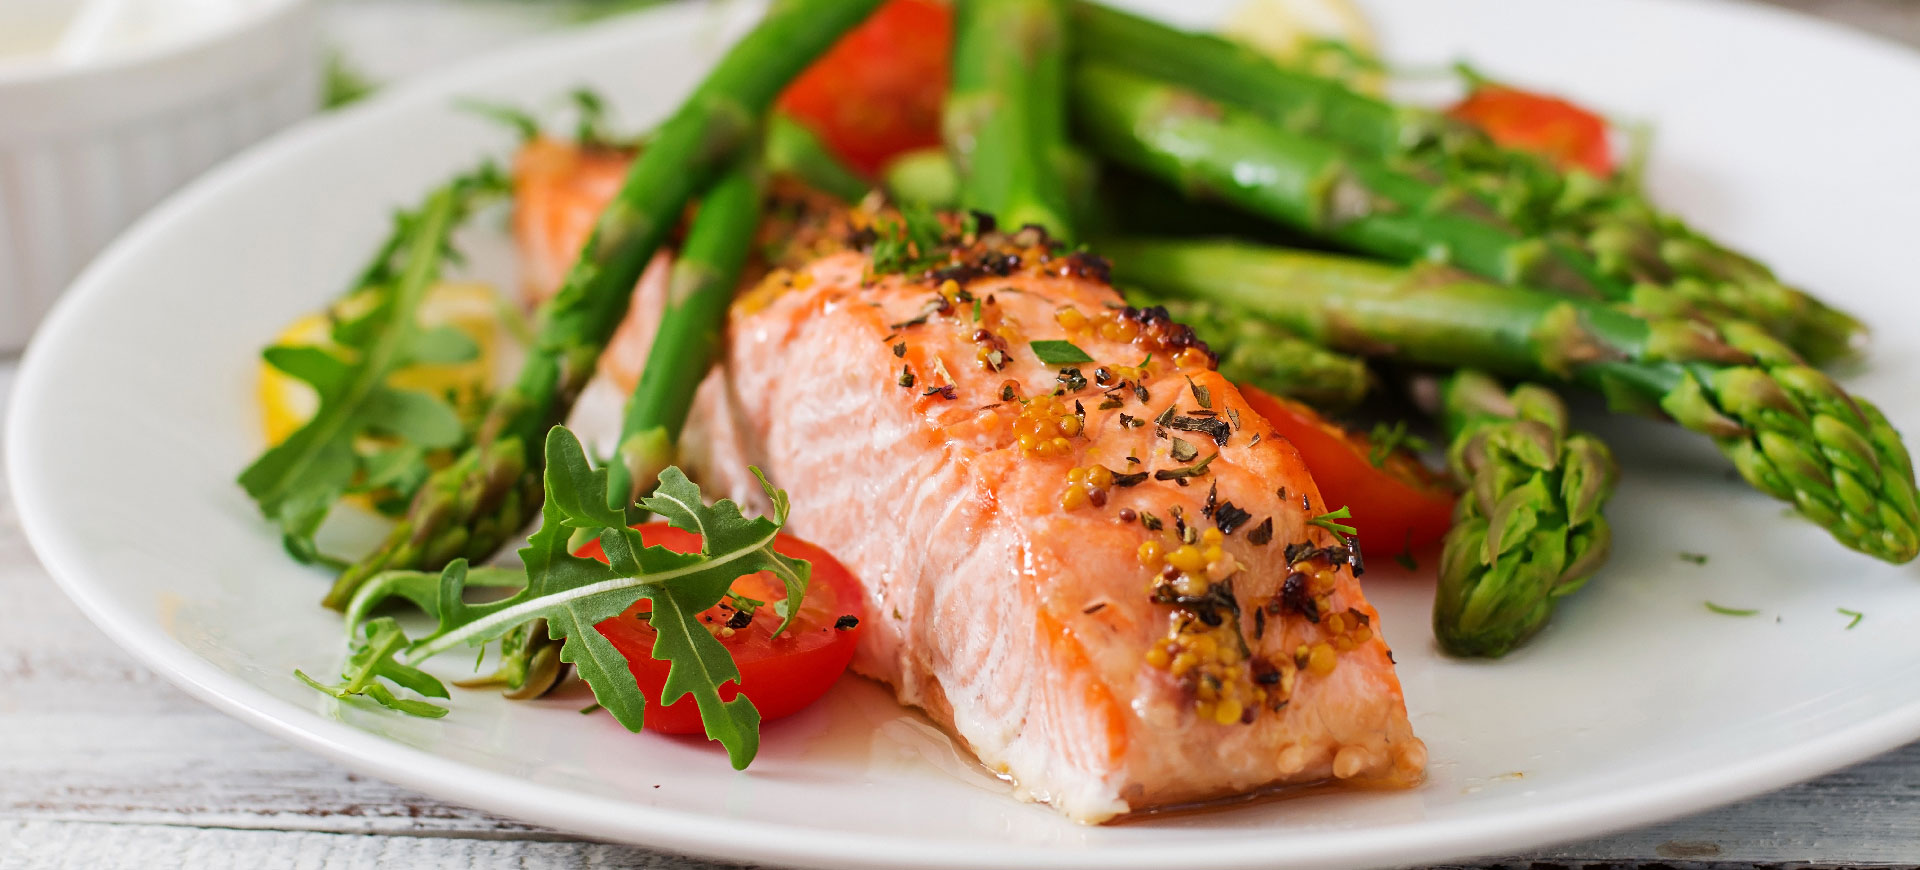 Add These Top 5 Healthiest Fish To Your Diet Today